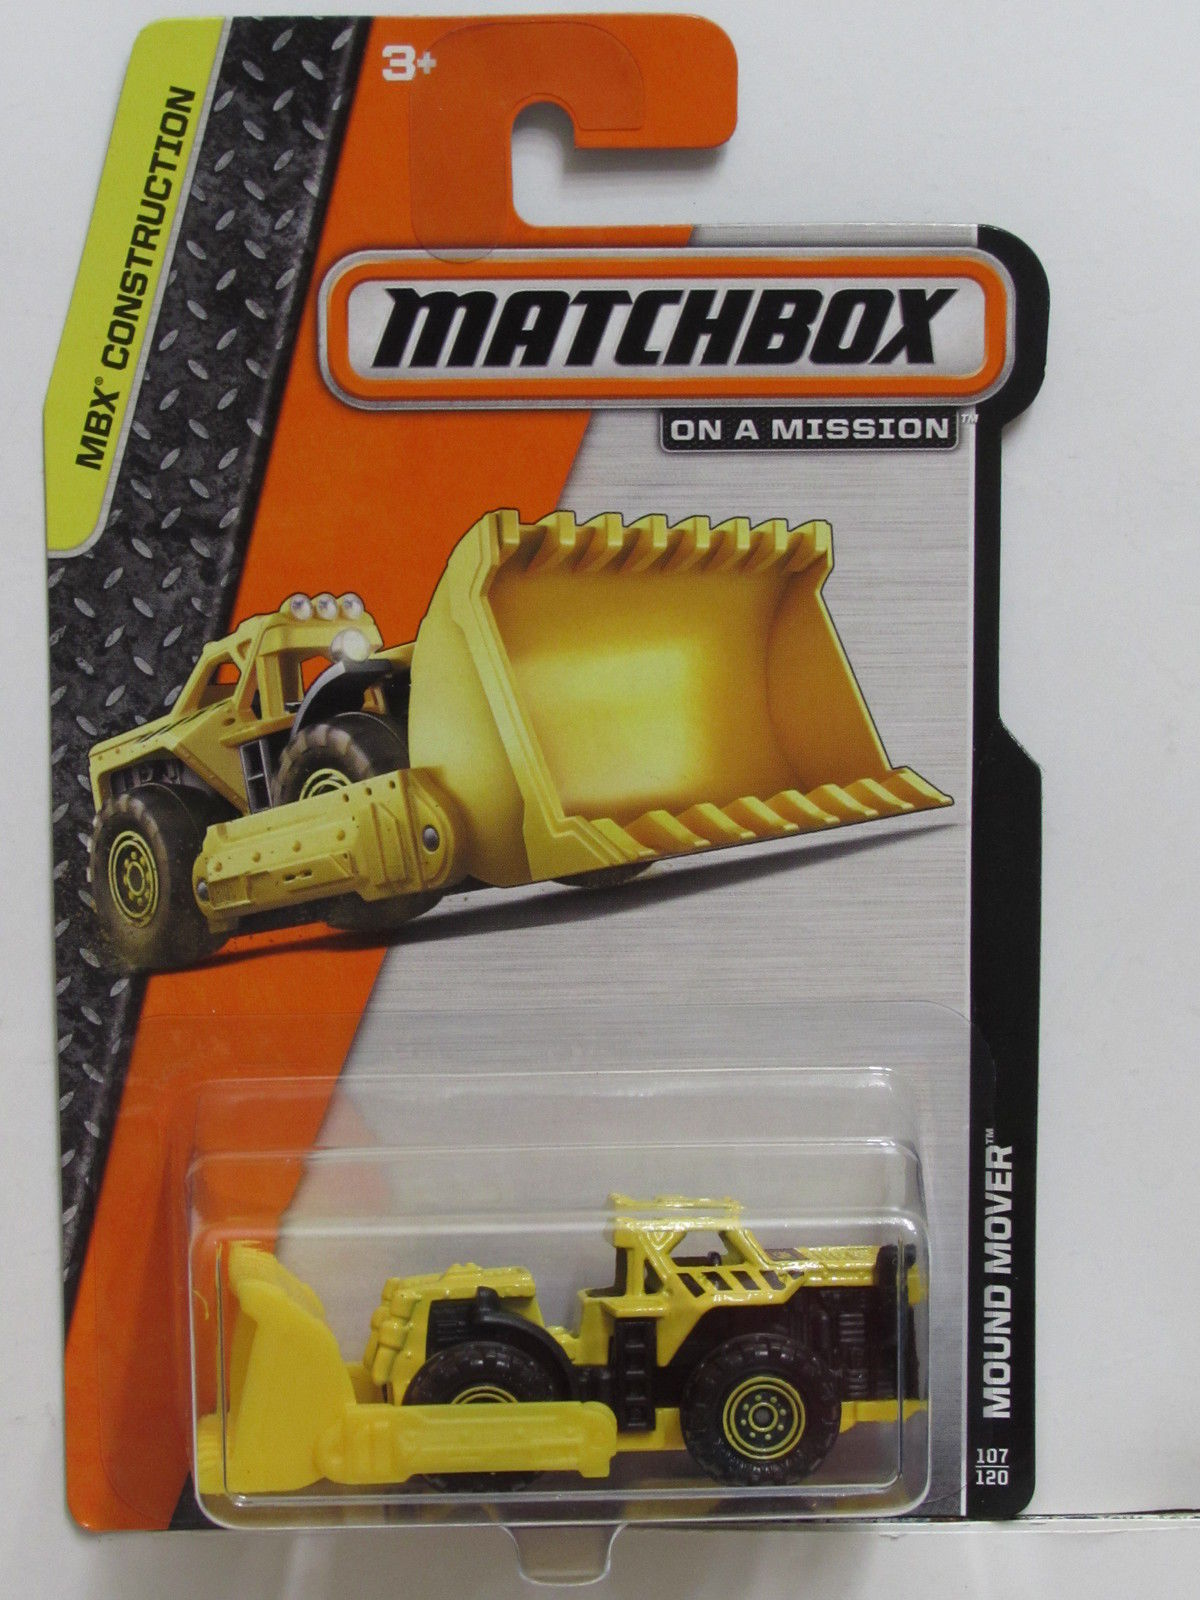 MATCHBOX 2013 ON A MISSION MBX CONSTRUCTION MOUND MOVER